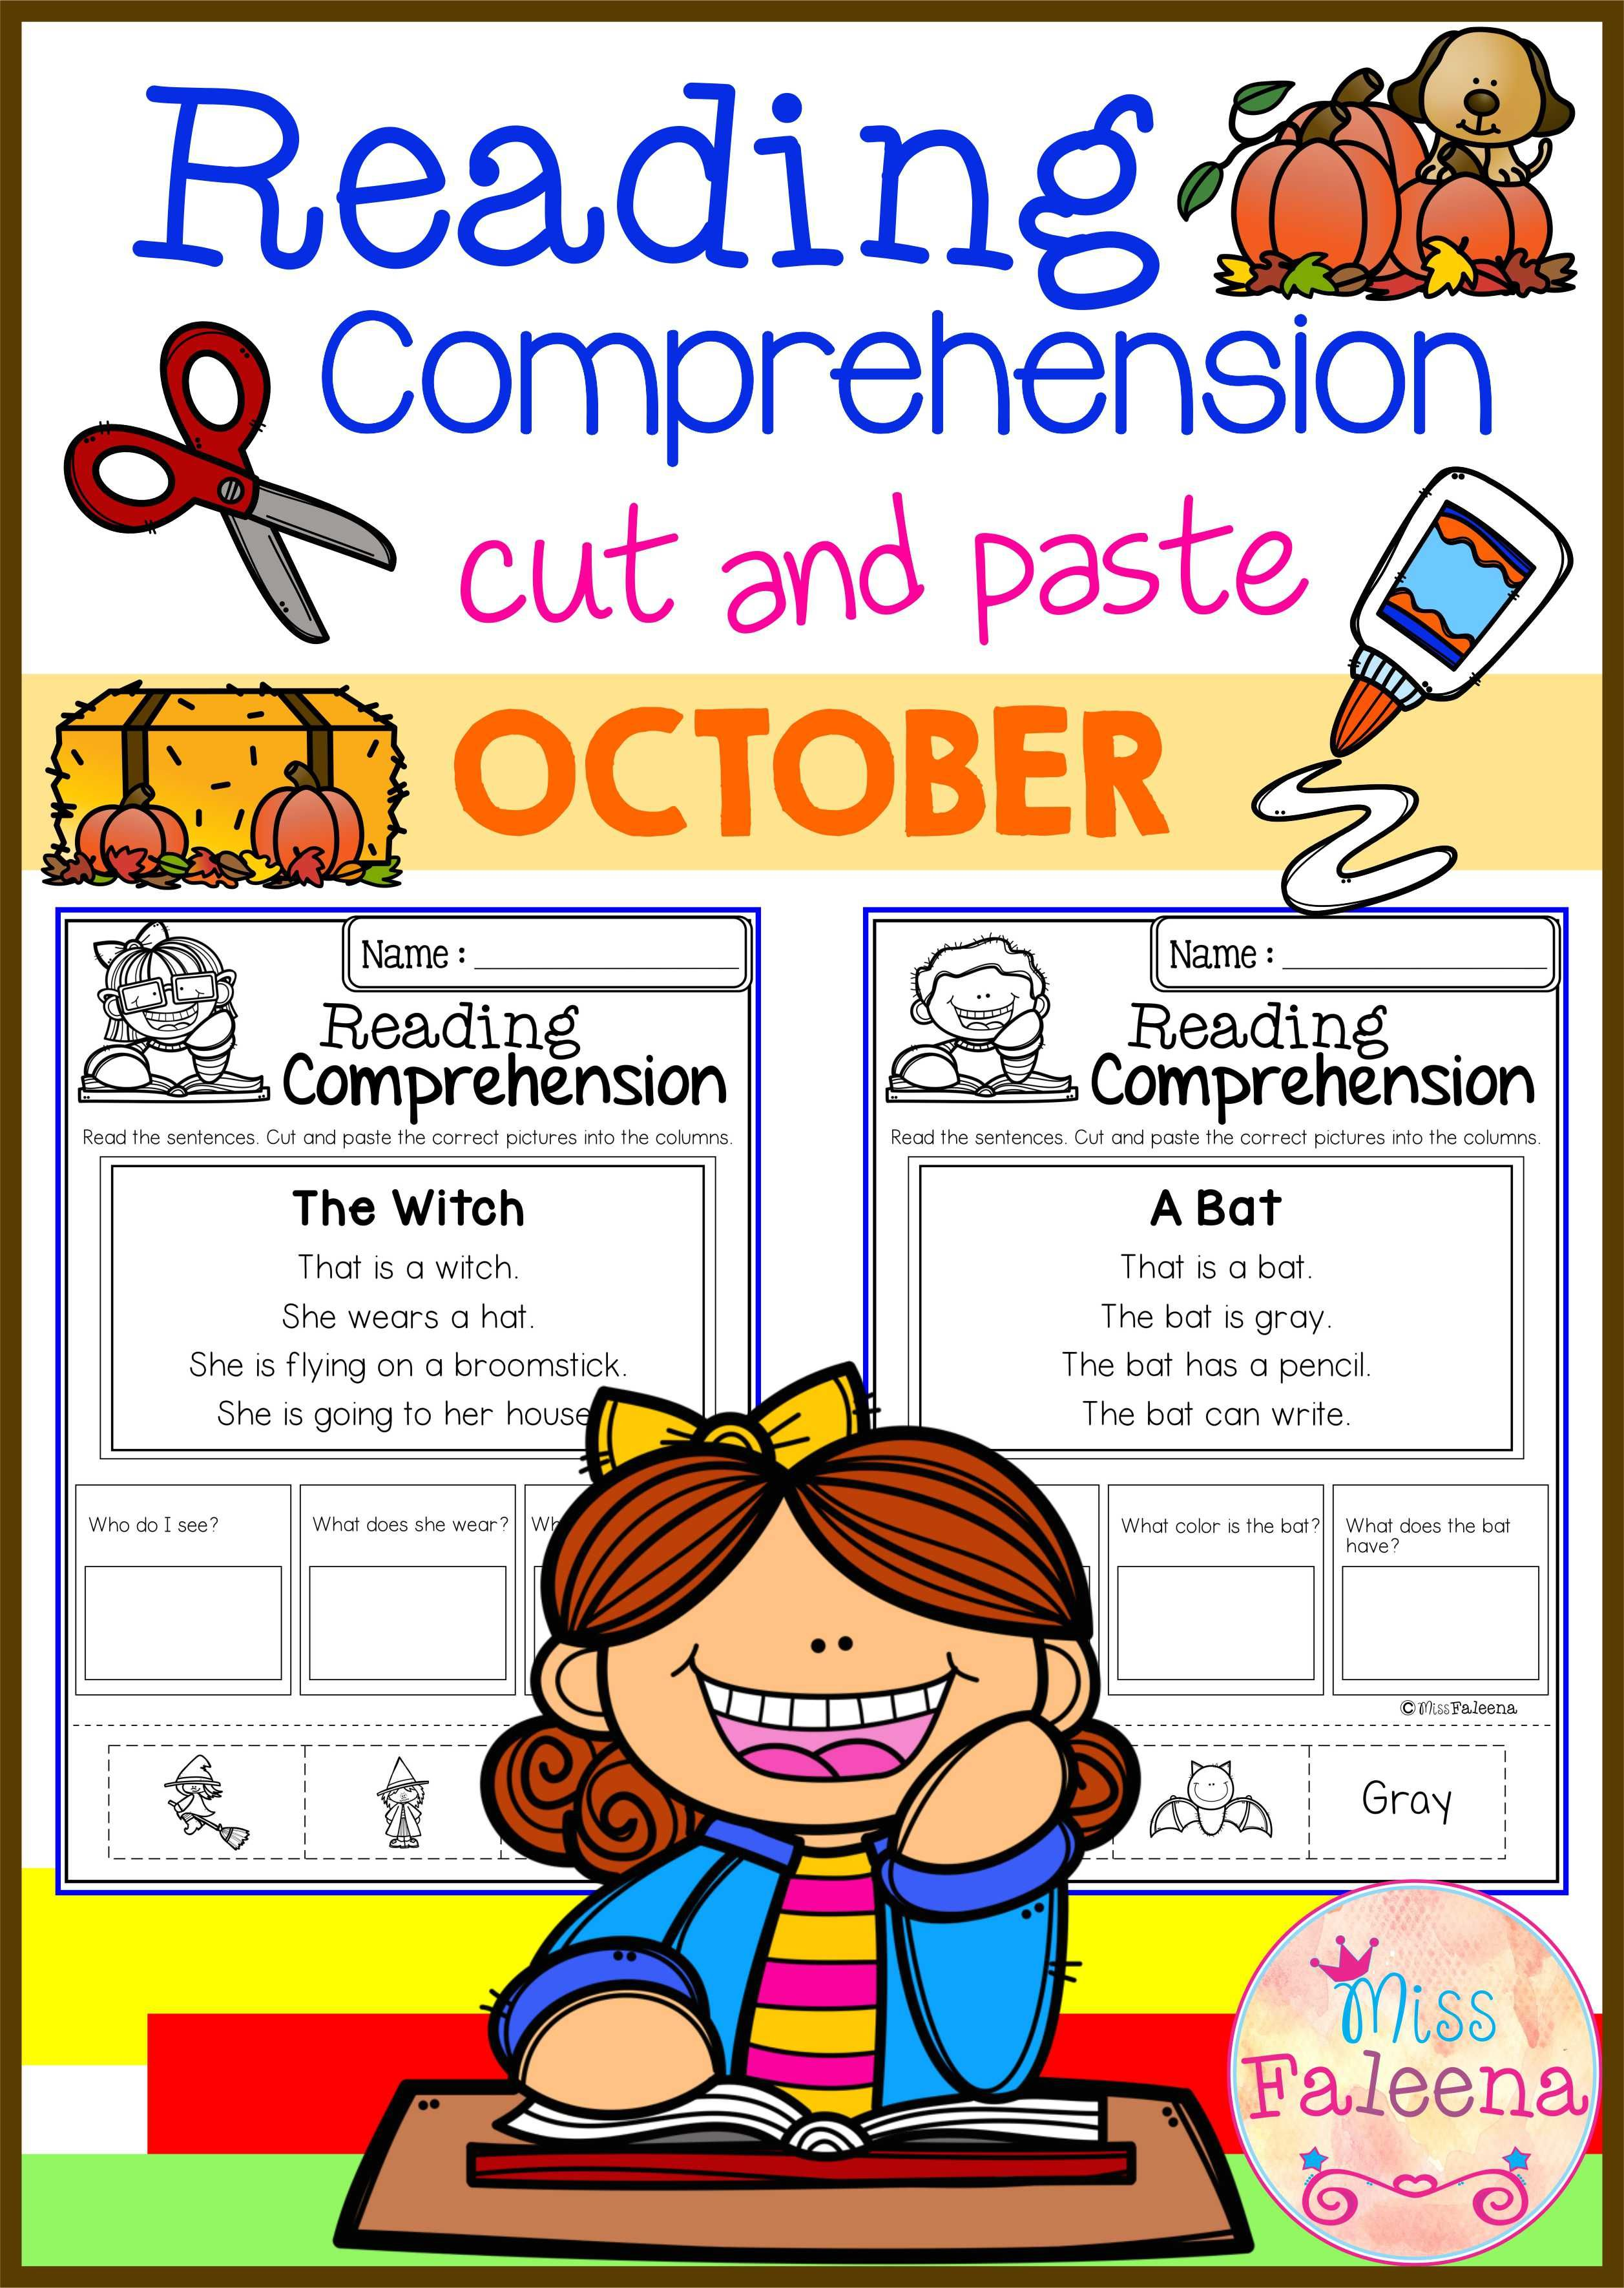 October Reading Comprehension Cut And Paste